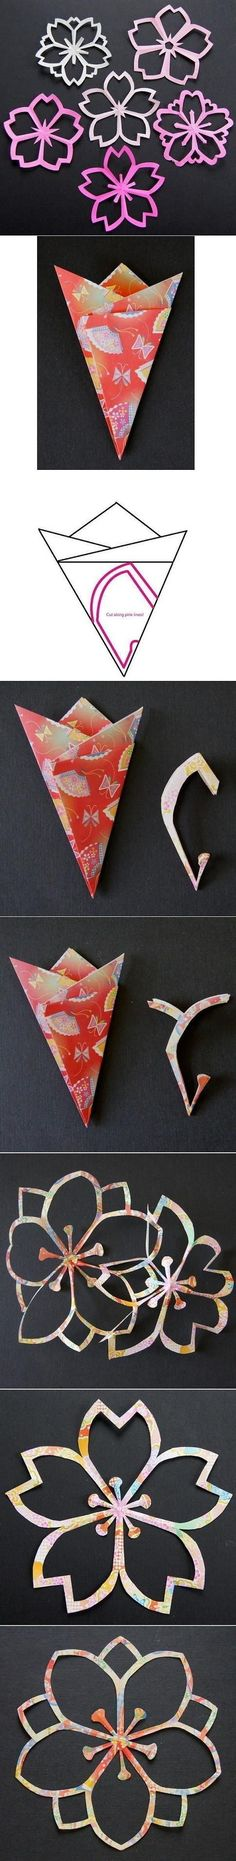 DIY Flower Decor From Paper diy craft crafts diy ideas how to tutorial craft flowers